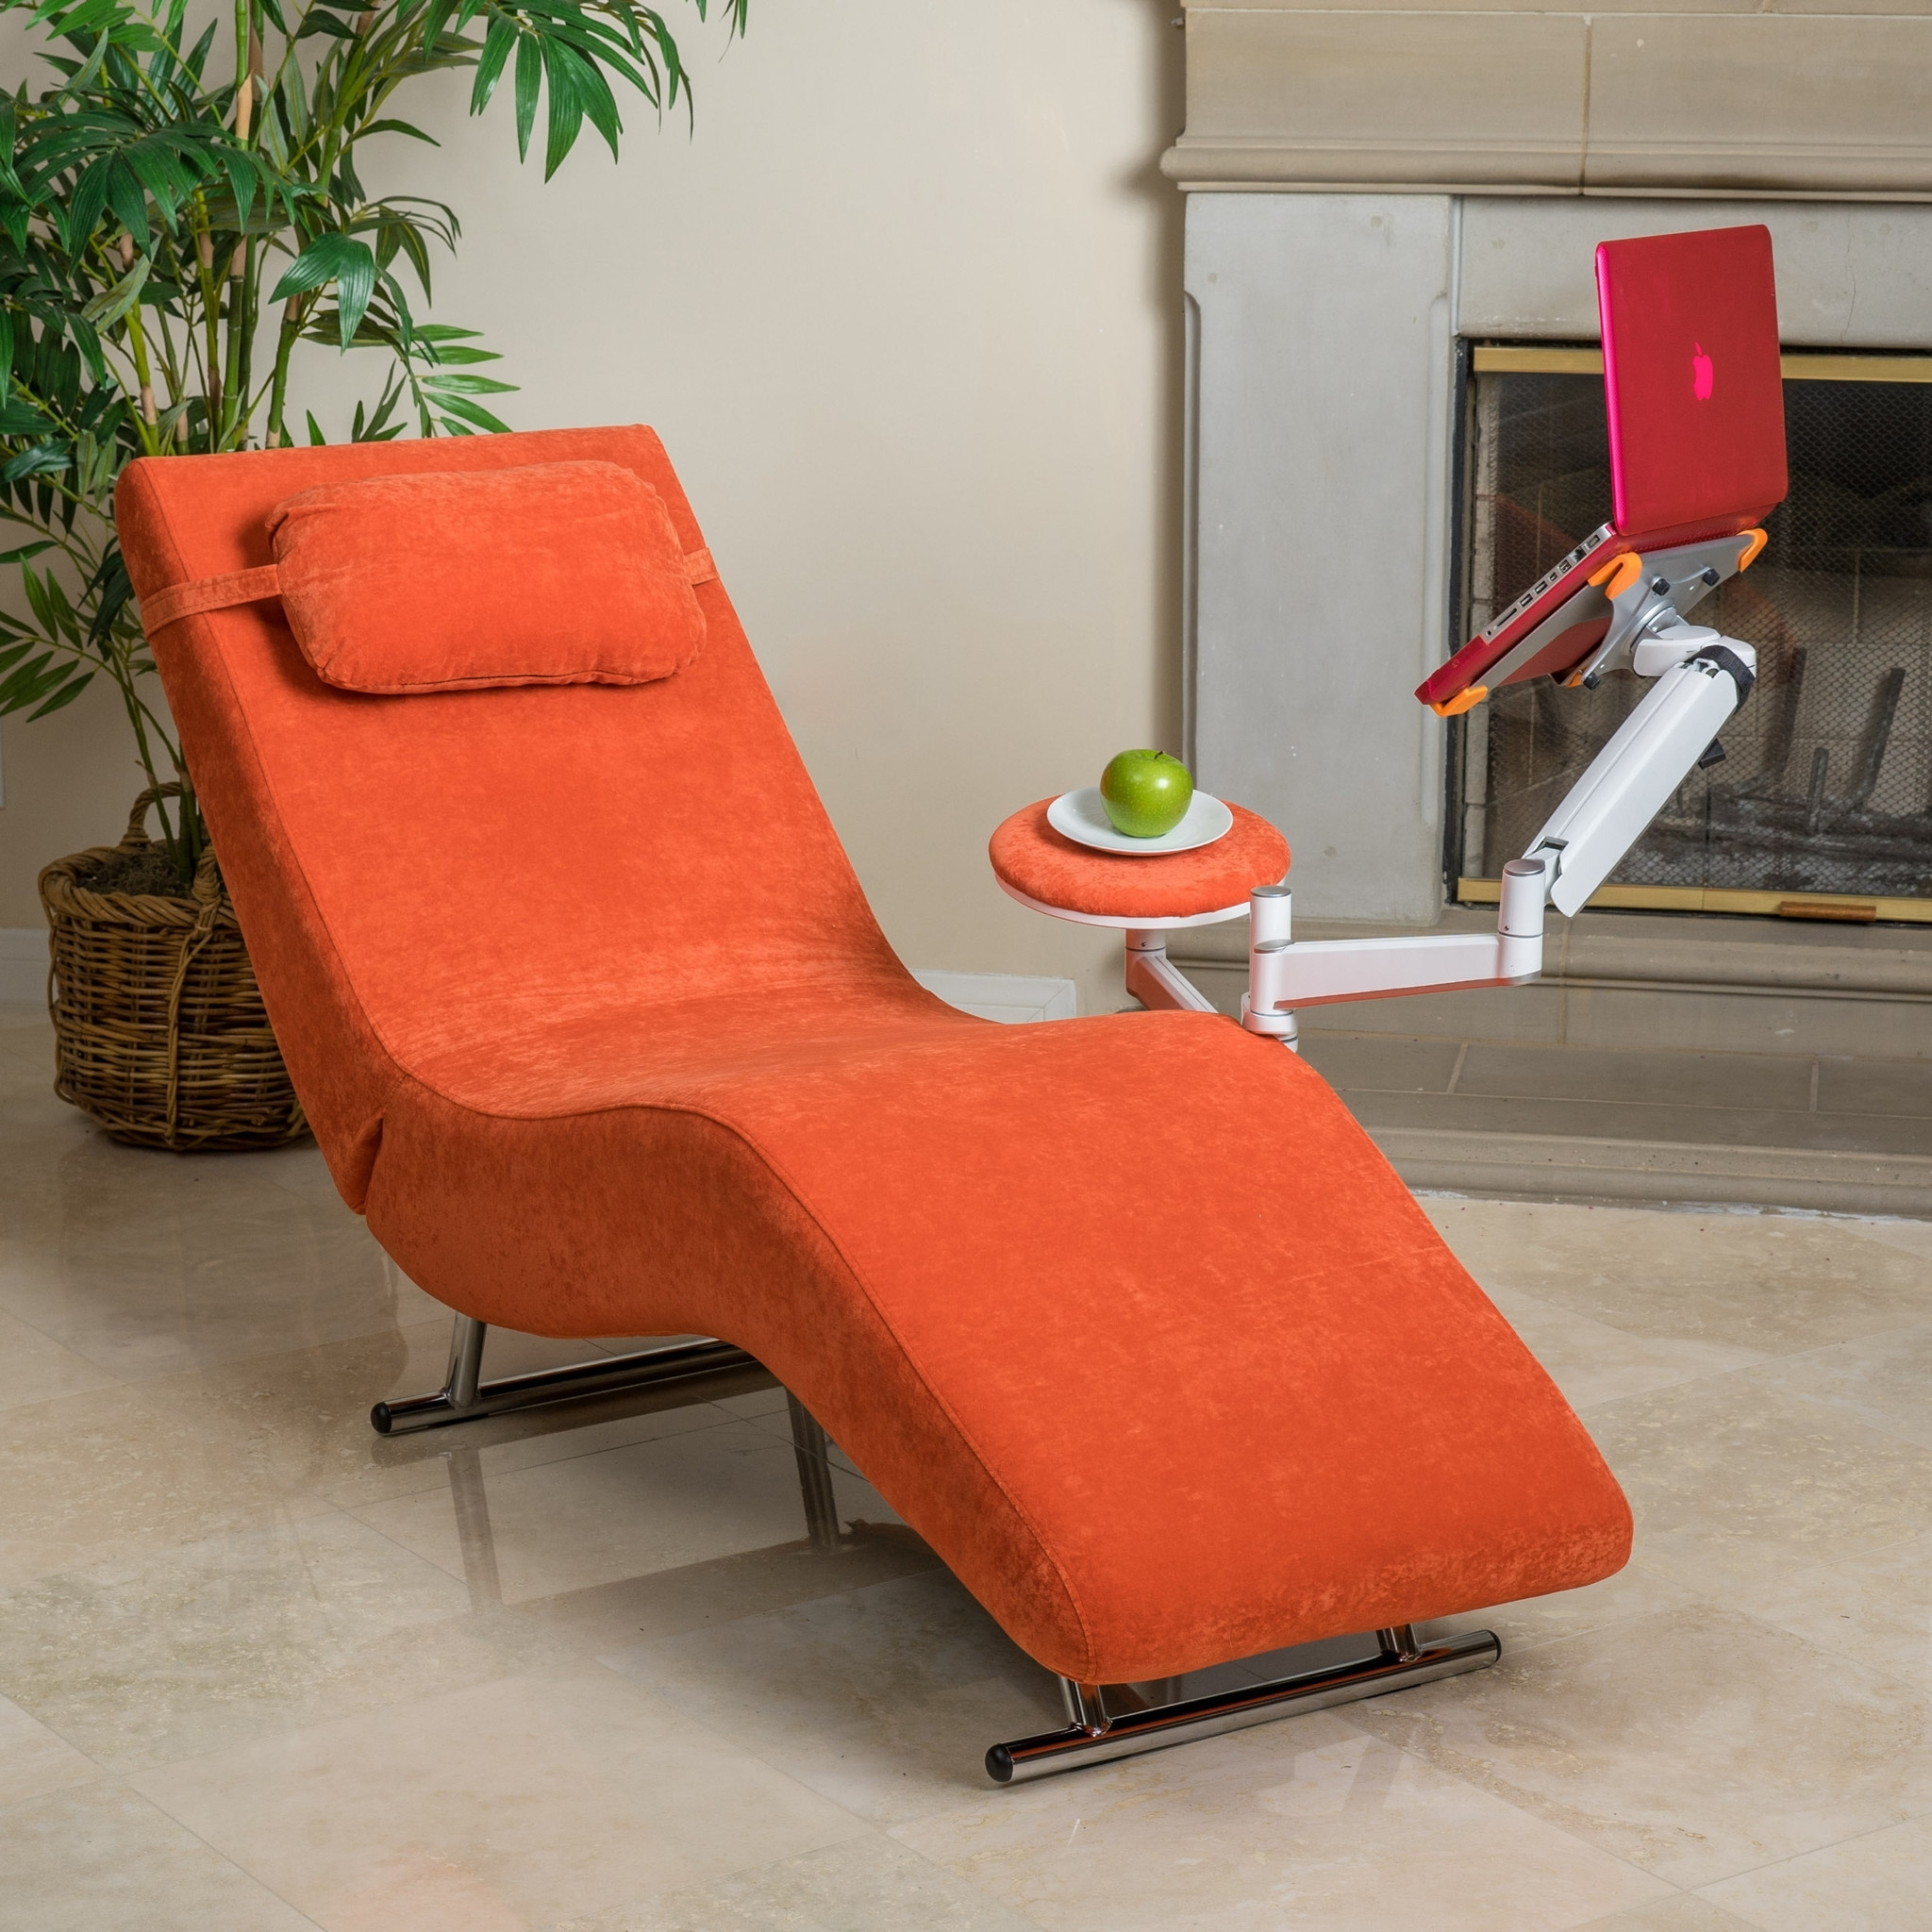 Well Known Furniture: Eason Burnt Orange Accent Chair Armless Wing Chair Plus Throughout Orange Chaise Lounges (View 14 of 15)